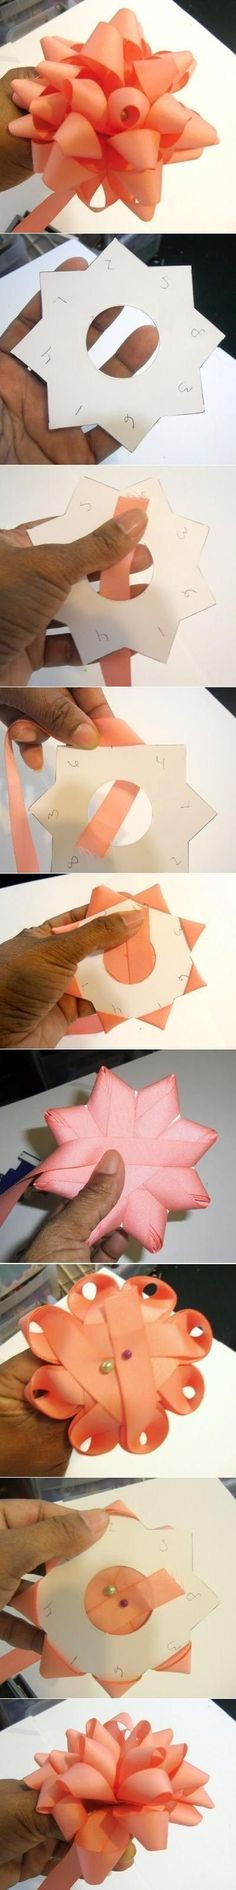 DIY Bow of Ribbon.jpg